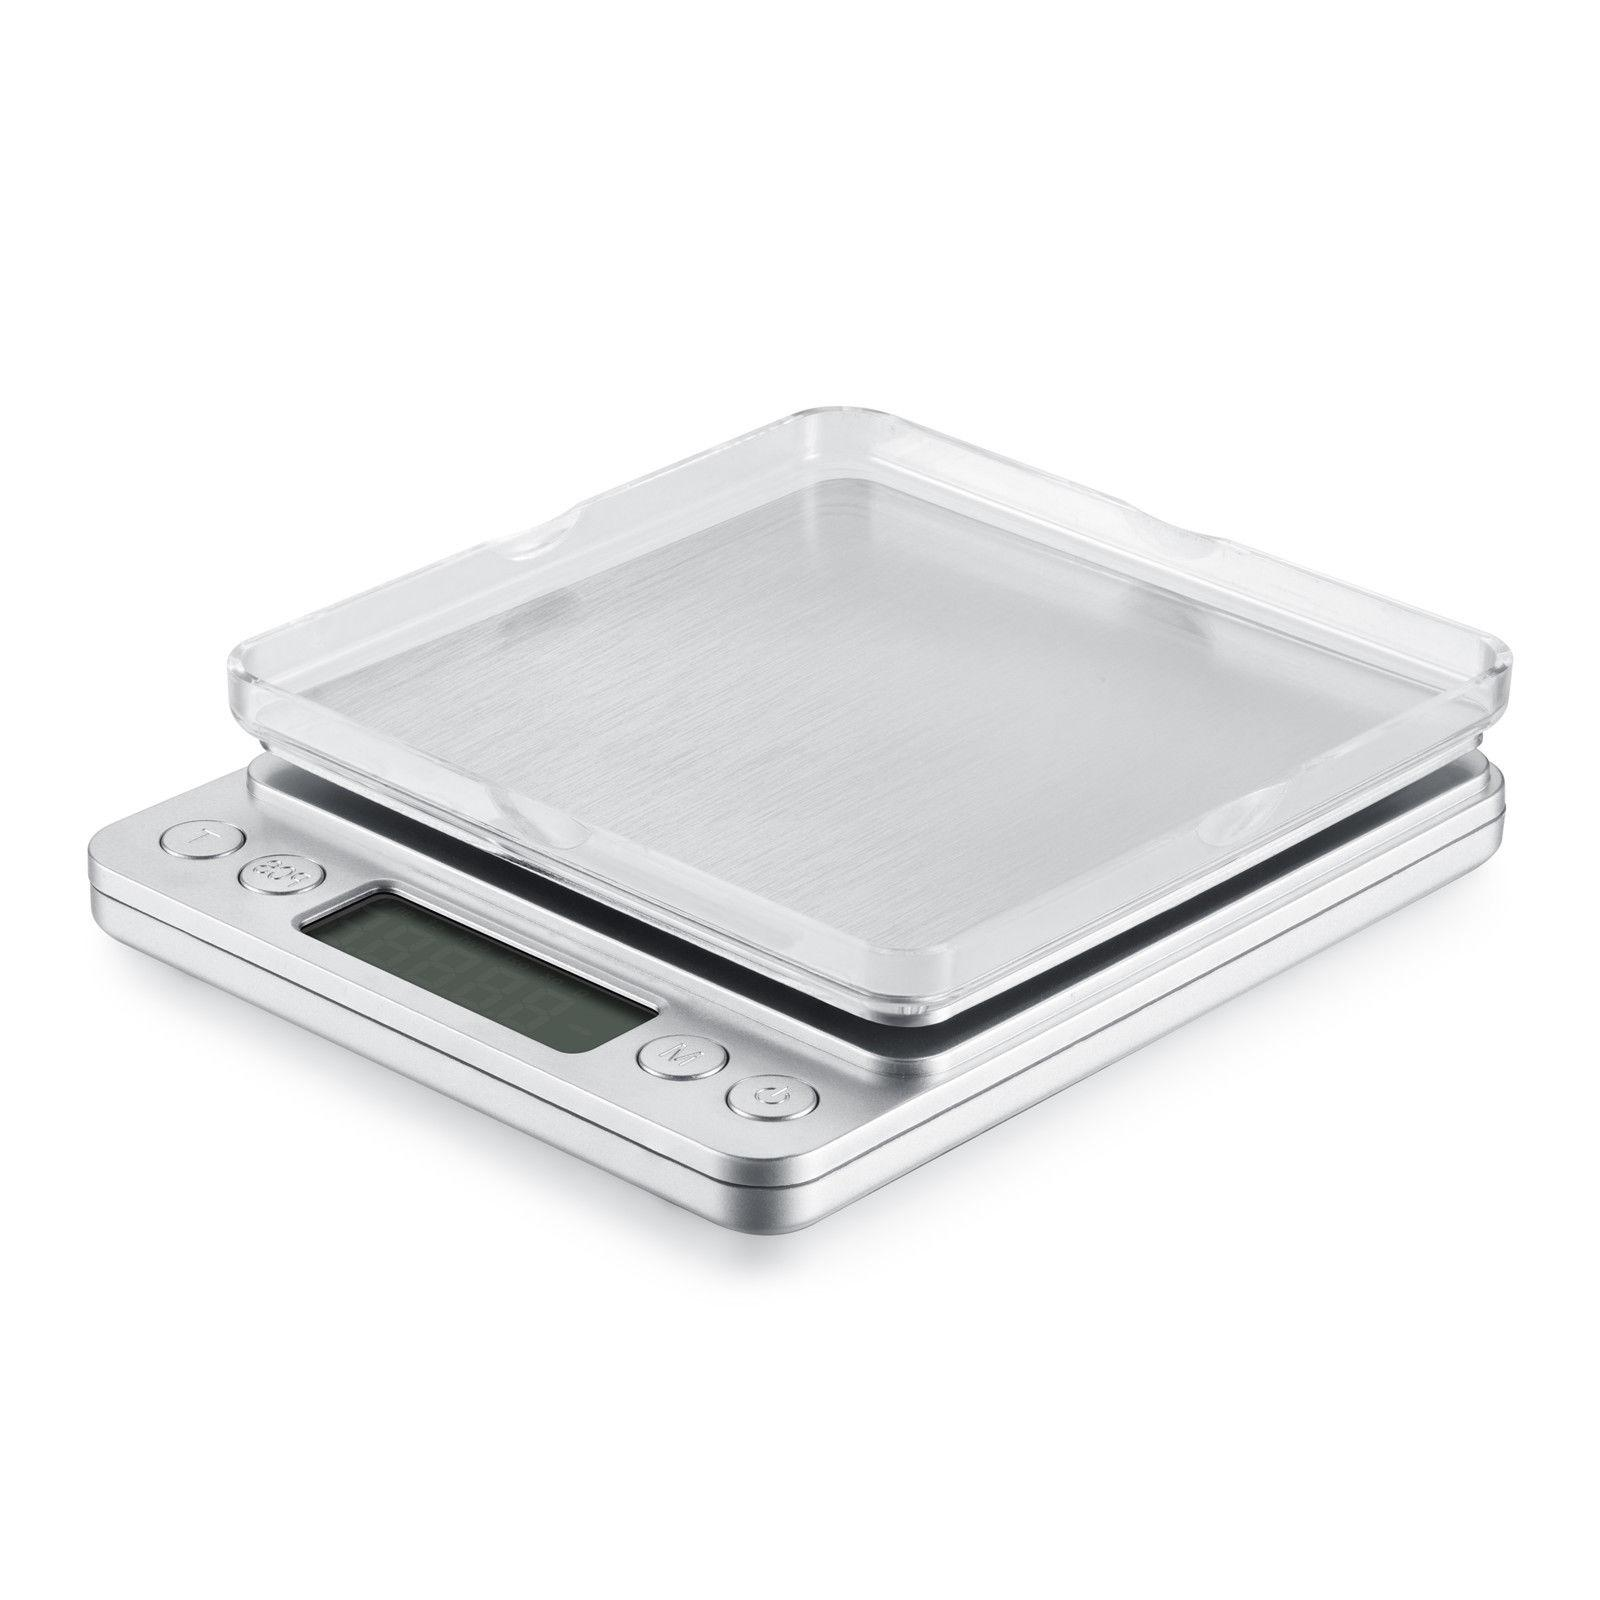 Digital Scale 3000g x 0.1g Jewelry Gold Silver Coin Gram Size Herb Grain